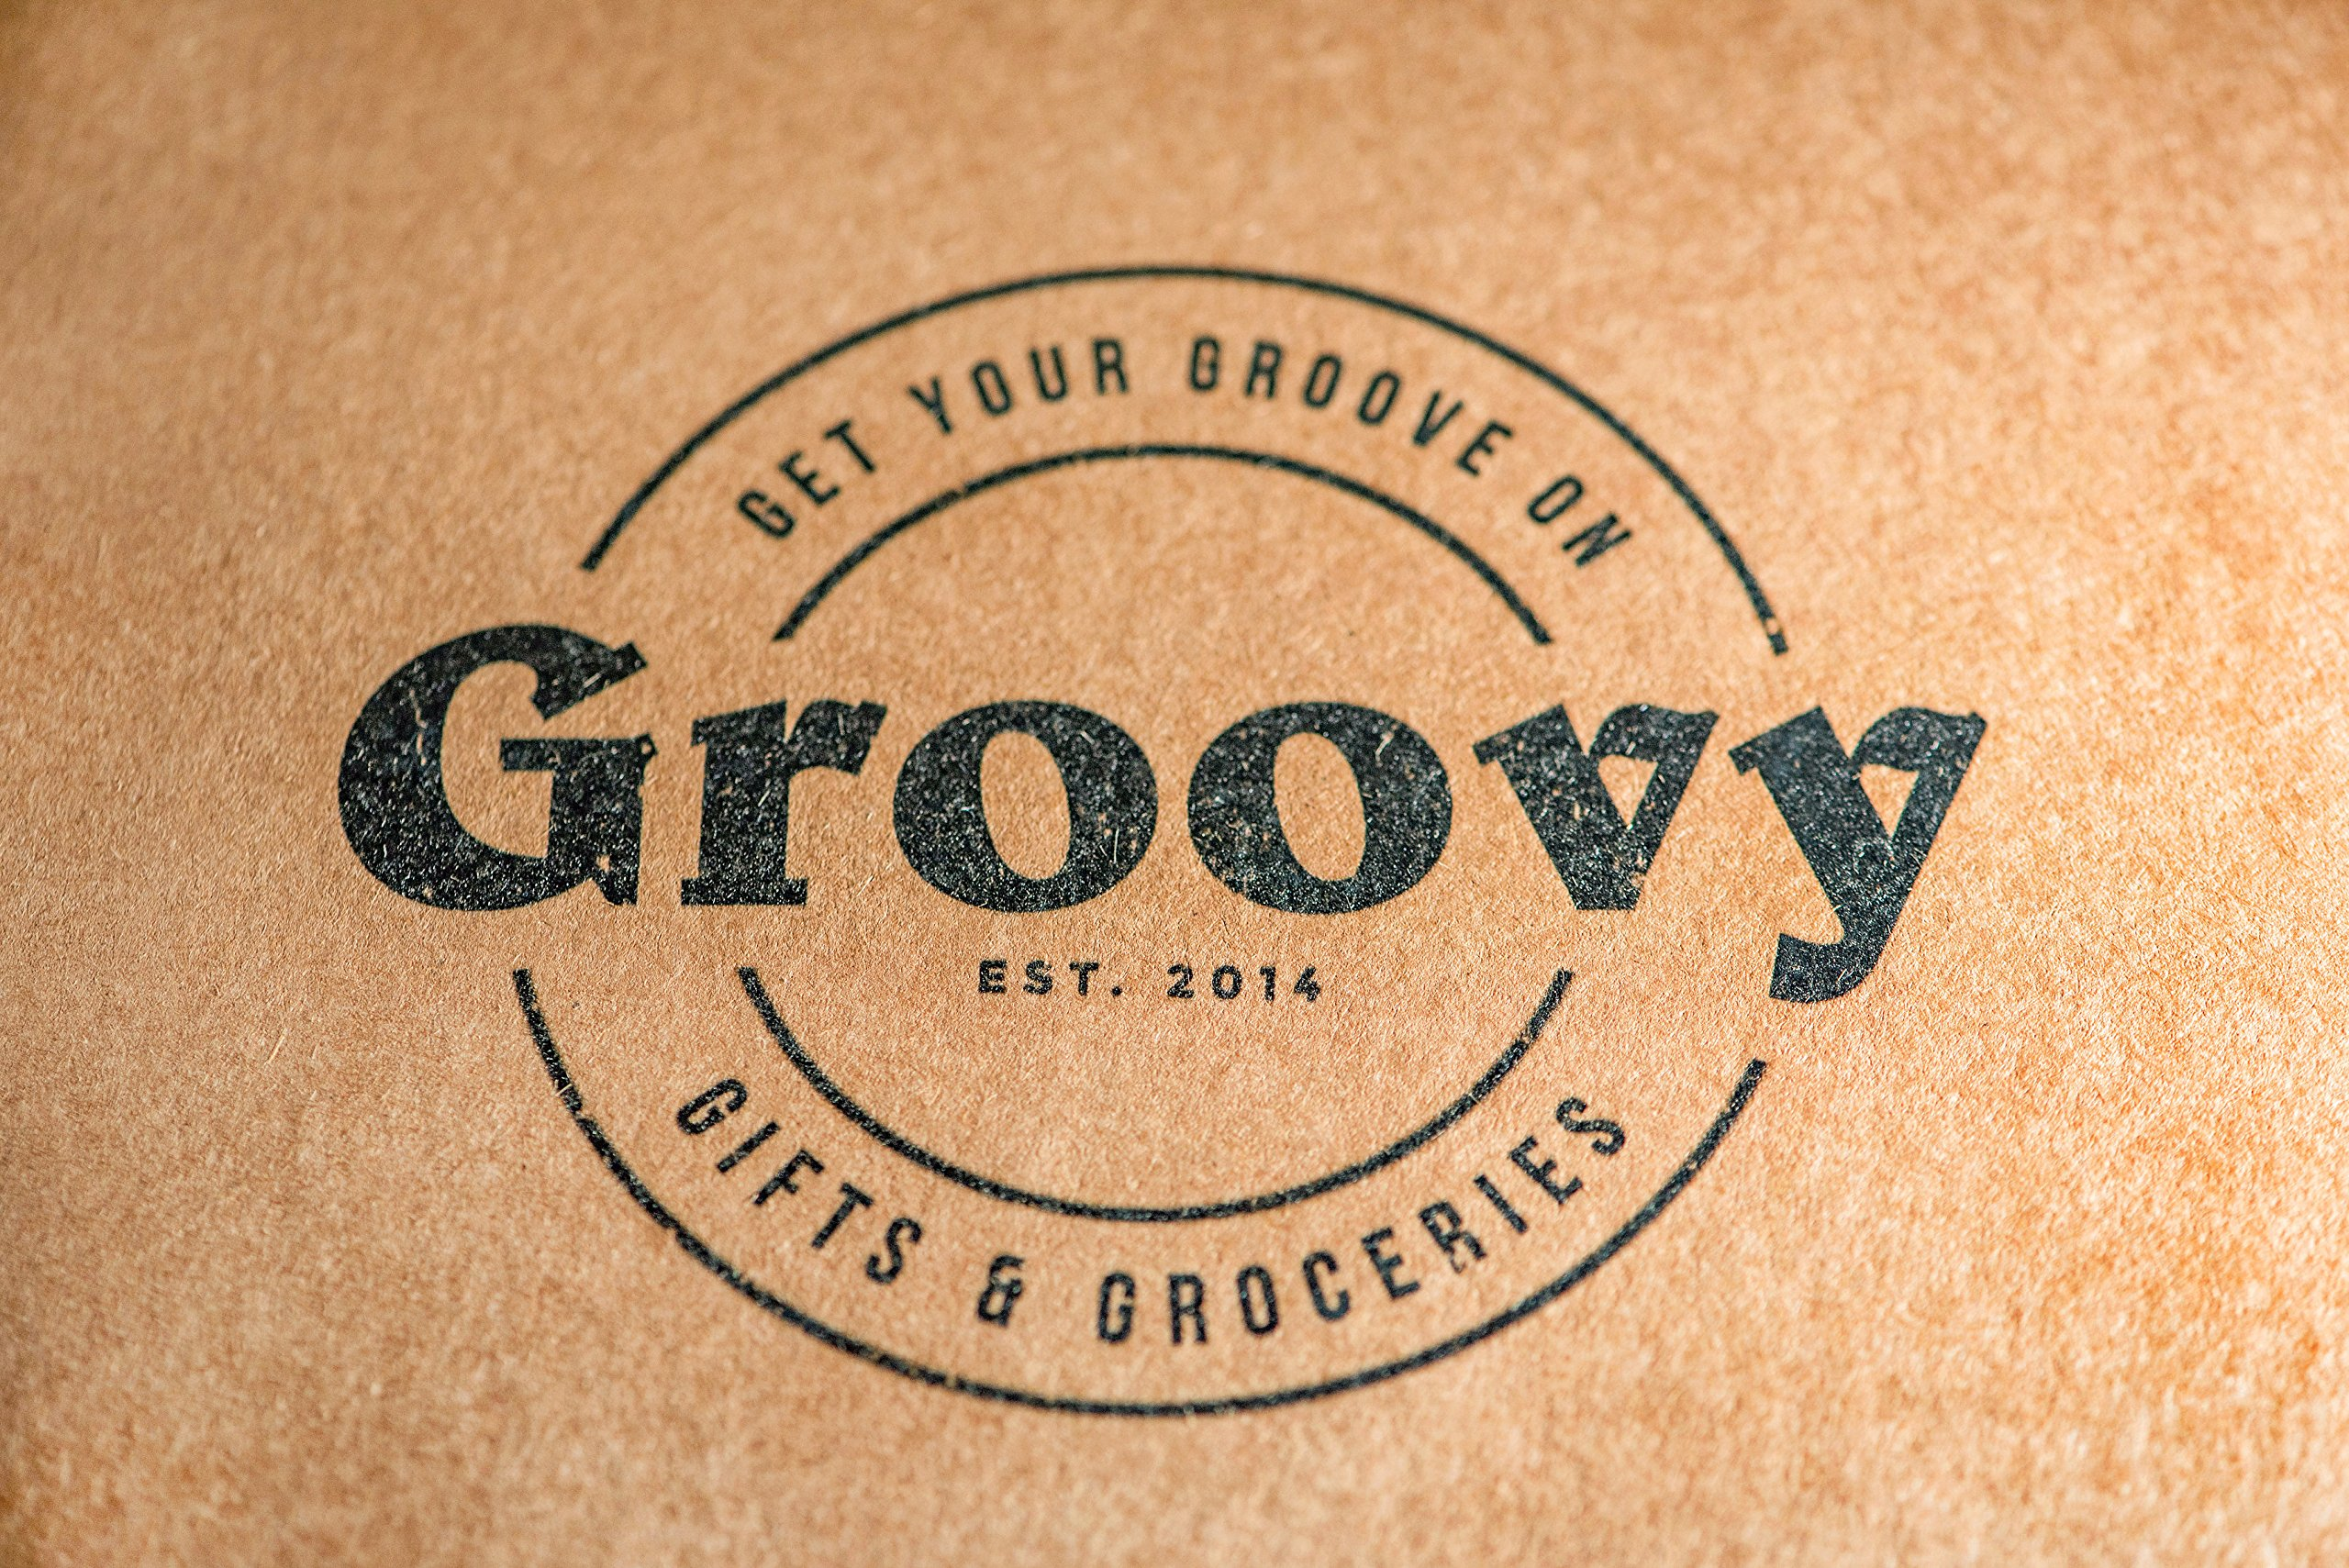 The Groovy Get Well Care Package - Send Care and Concern - Feel Better Soon Gift Basket by Groovy Get Well Box (Image #7)